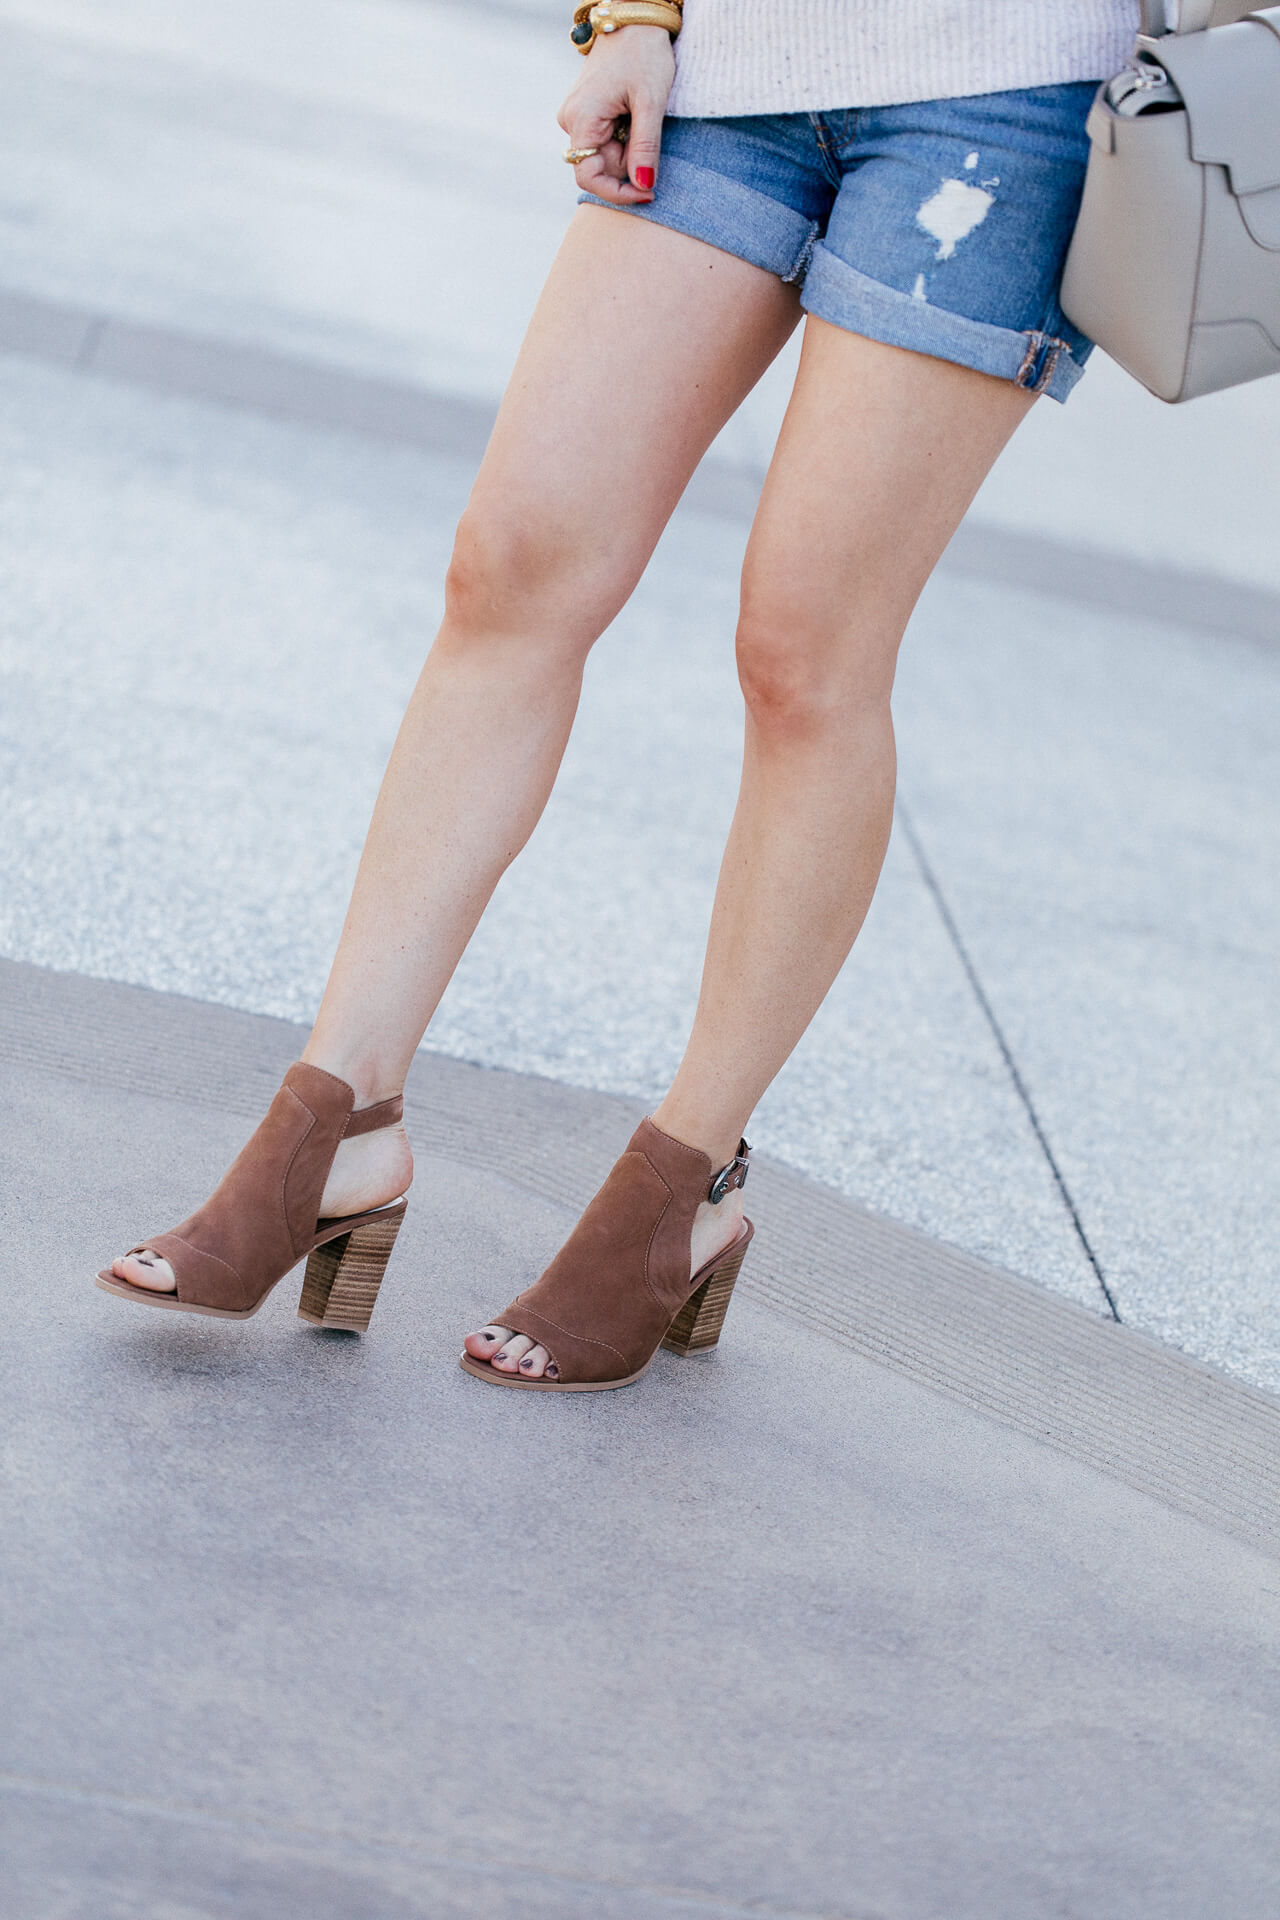 Gotta love open toe brown booties! I love this outfit inspired by SoCal in fall! So chic!   M Loves M @marmar